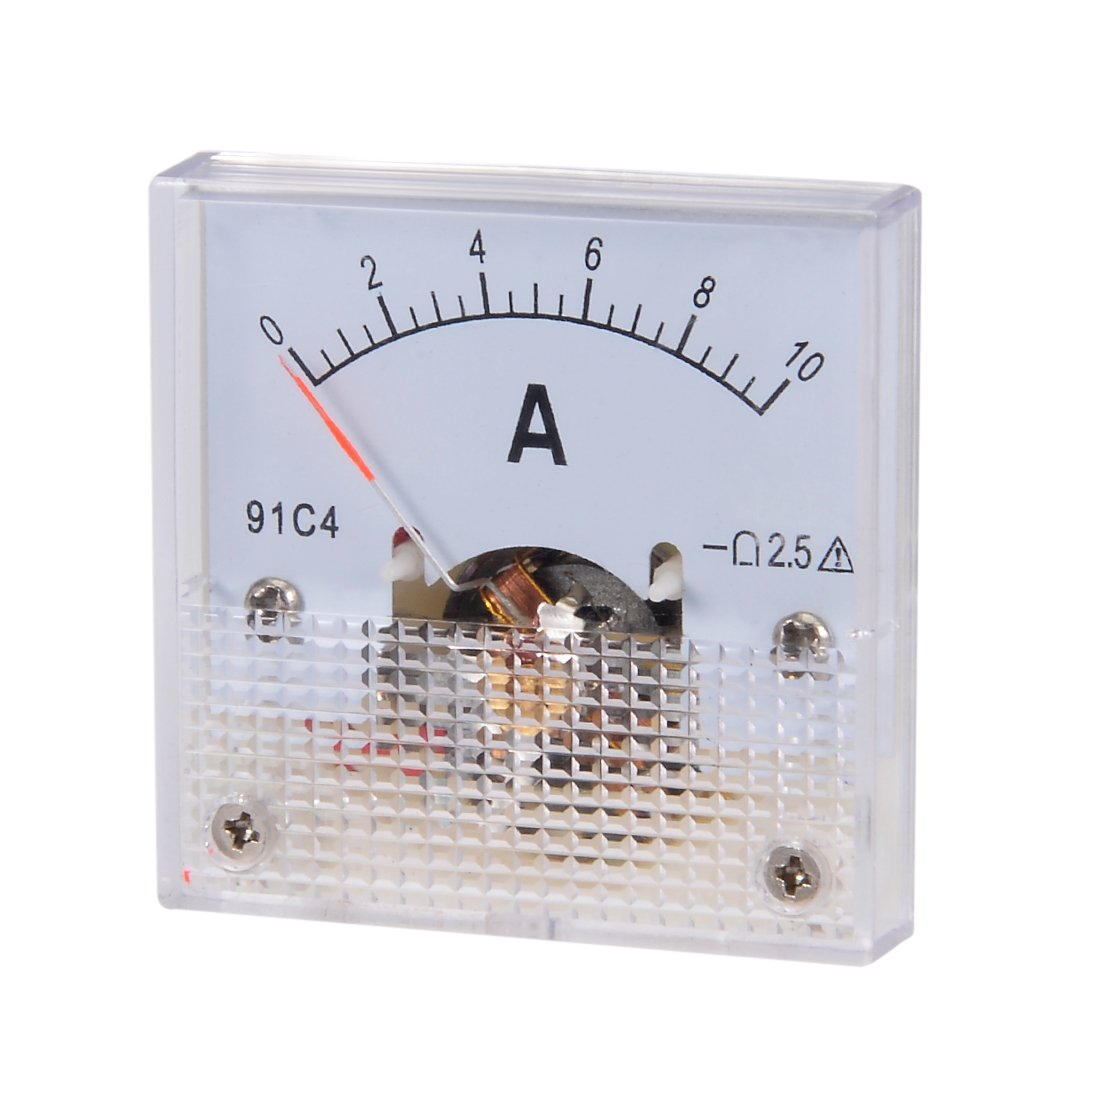 uxcell 91C4-A Analog Current Panel Meter DC 10A Ammeter for Circuit Testing Ampere Tester Gauge 1 PCS